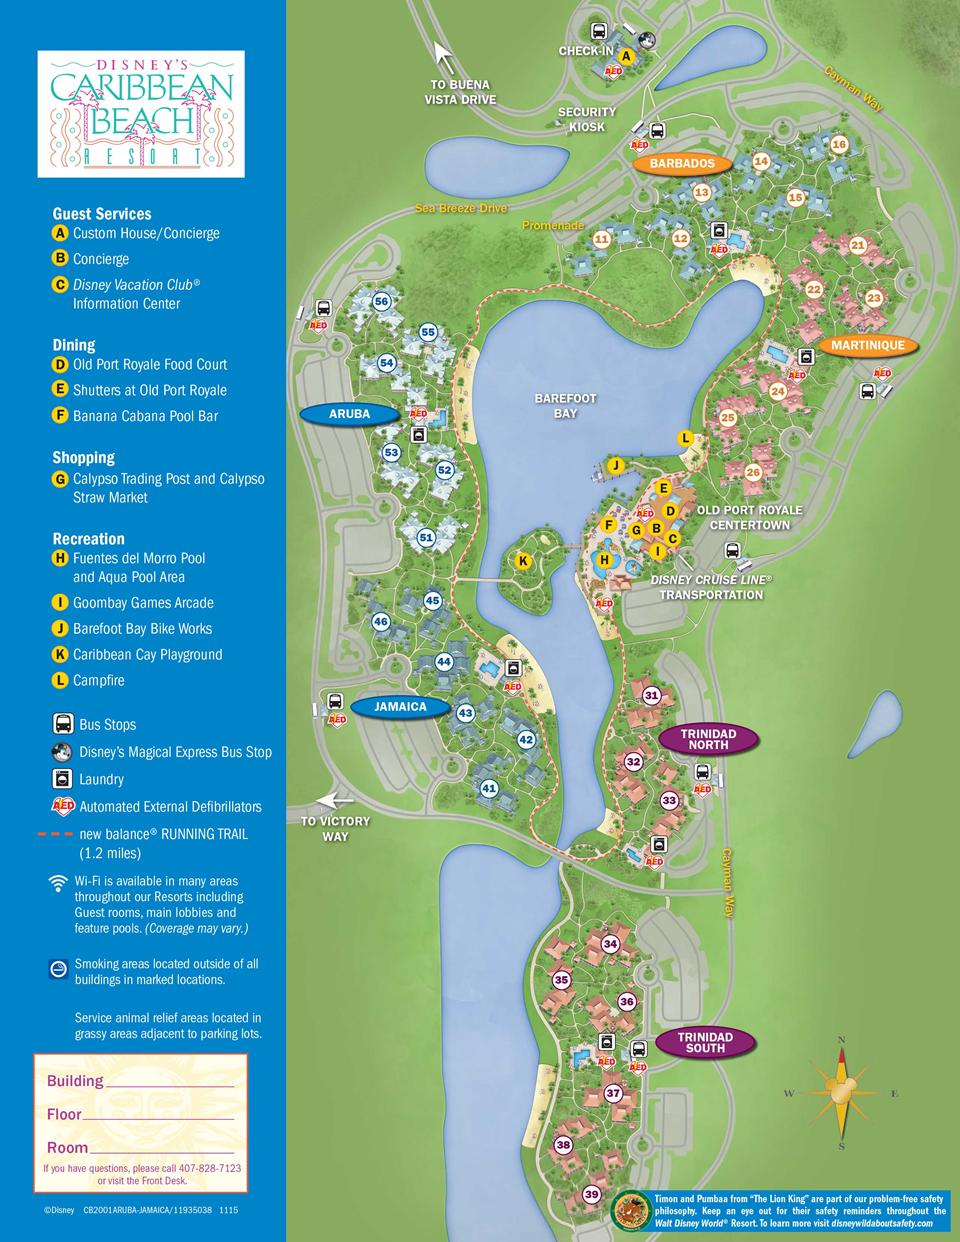 [TR] Partir là-bas : First Time at Walt Disney World - September 2017 (Starring the Fabulous Irma !)  - Page 2 Maps_Full_30026